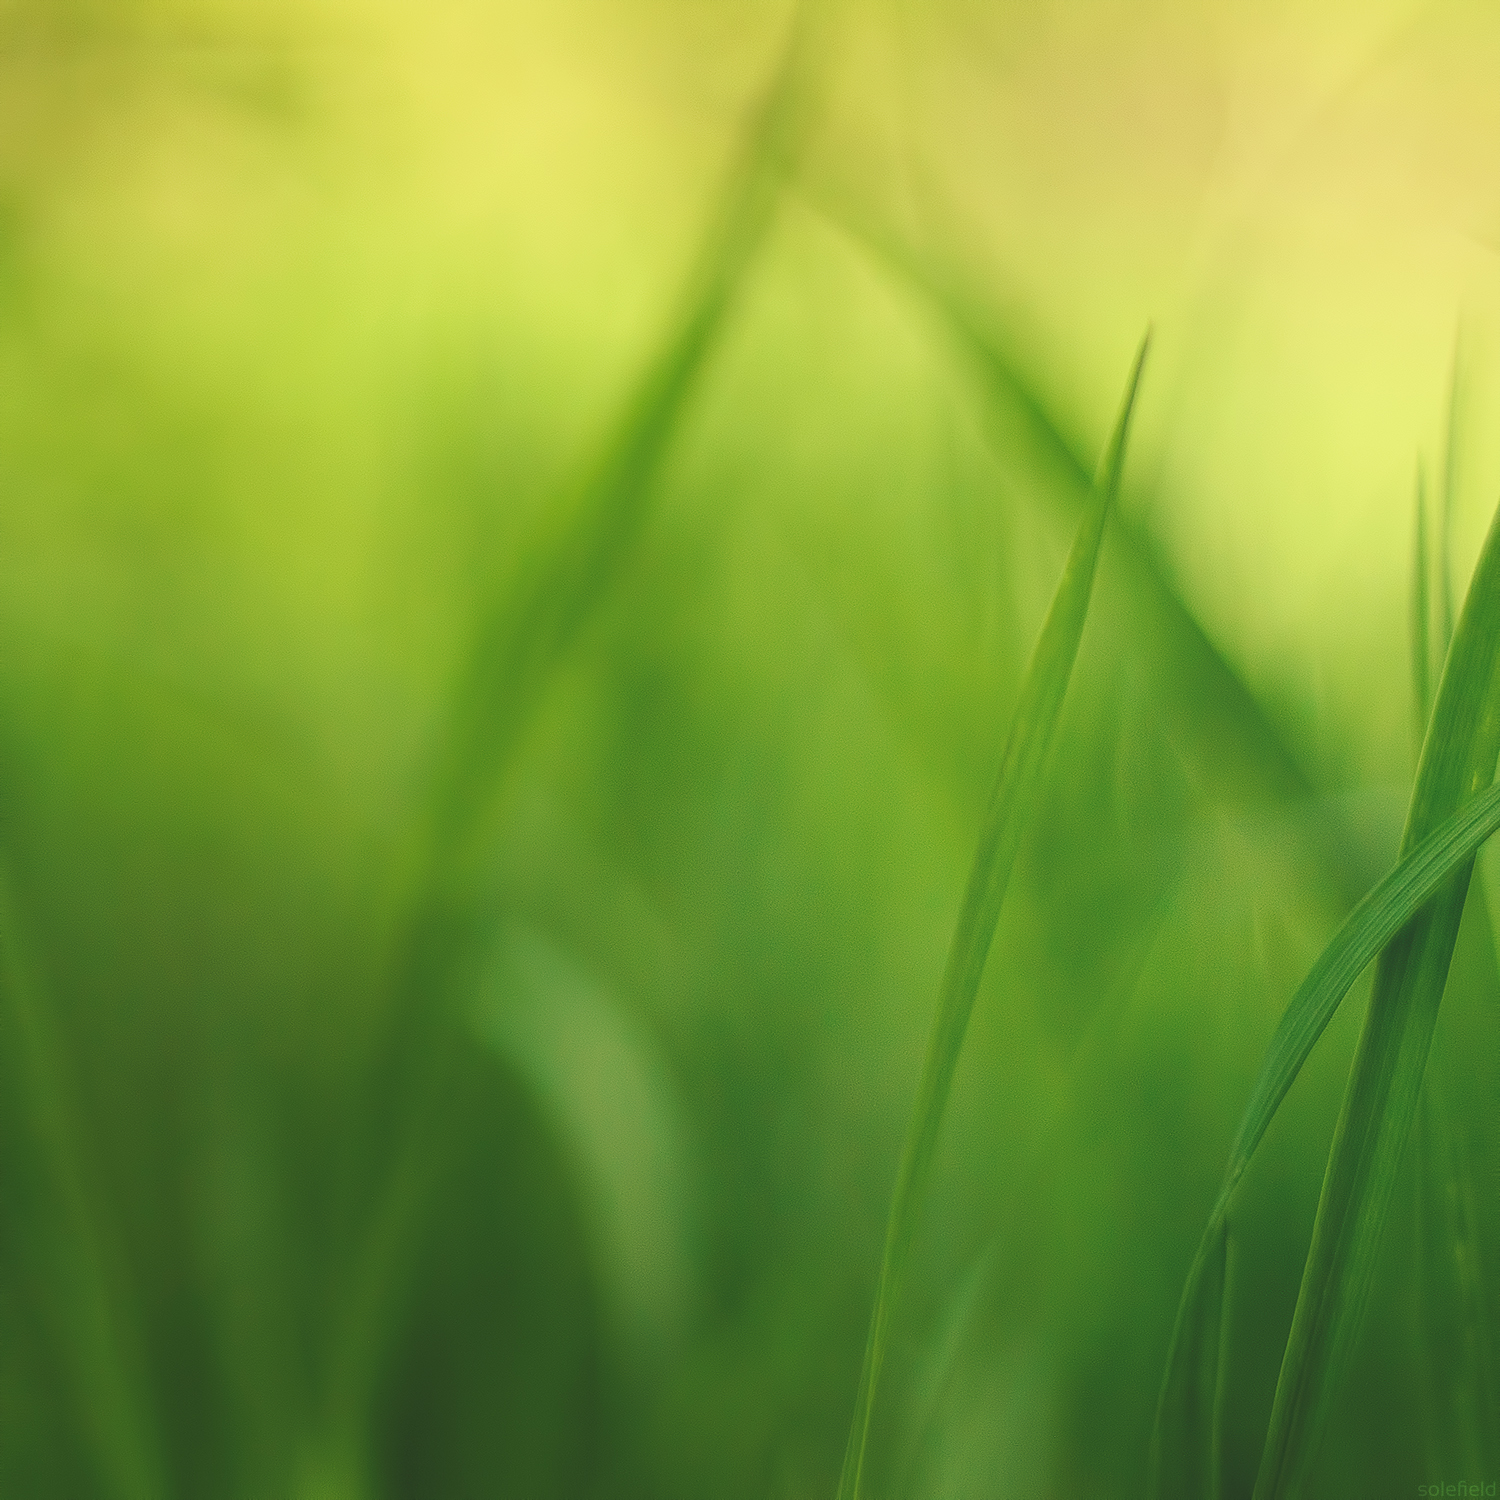 Abstract Green Grass